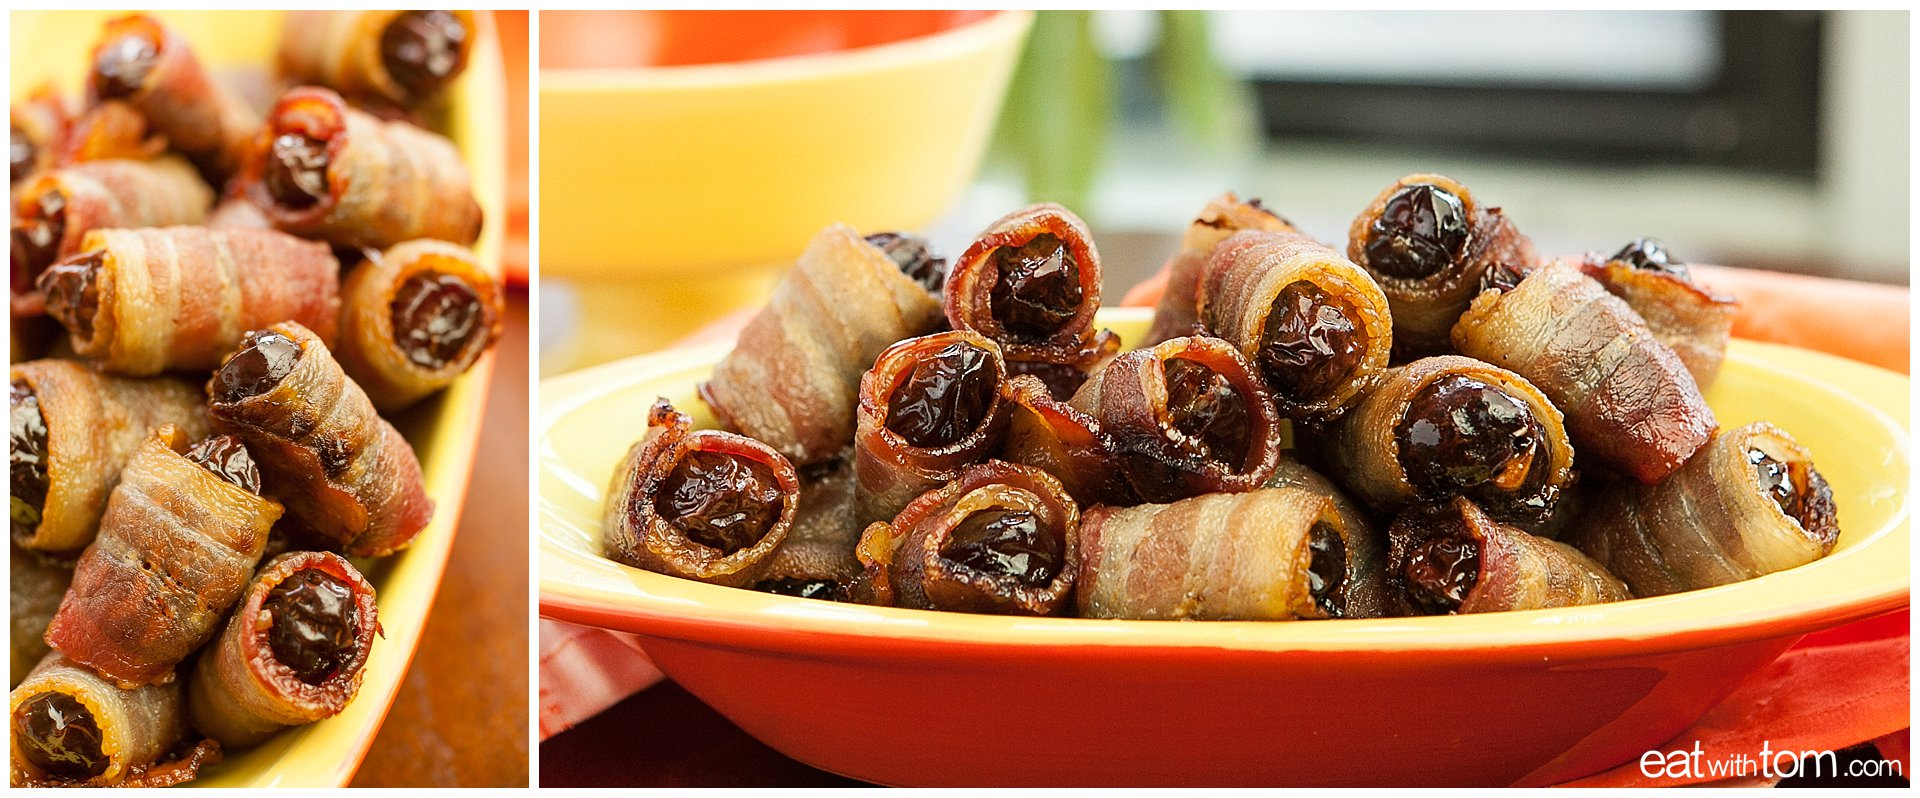 Bacon wrapped dates recipe pictures how to make healthy party food